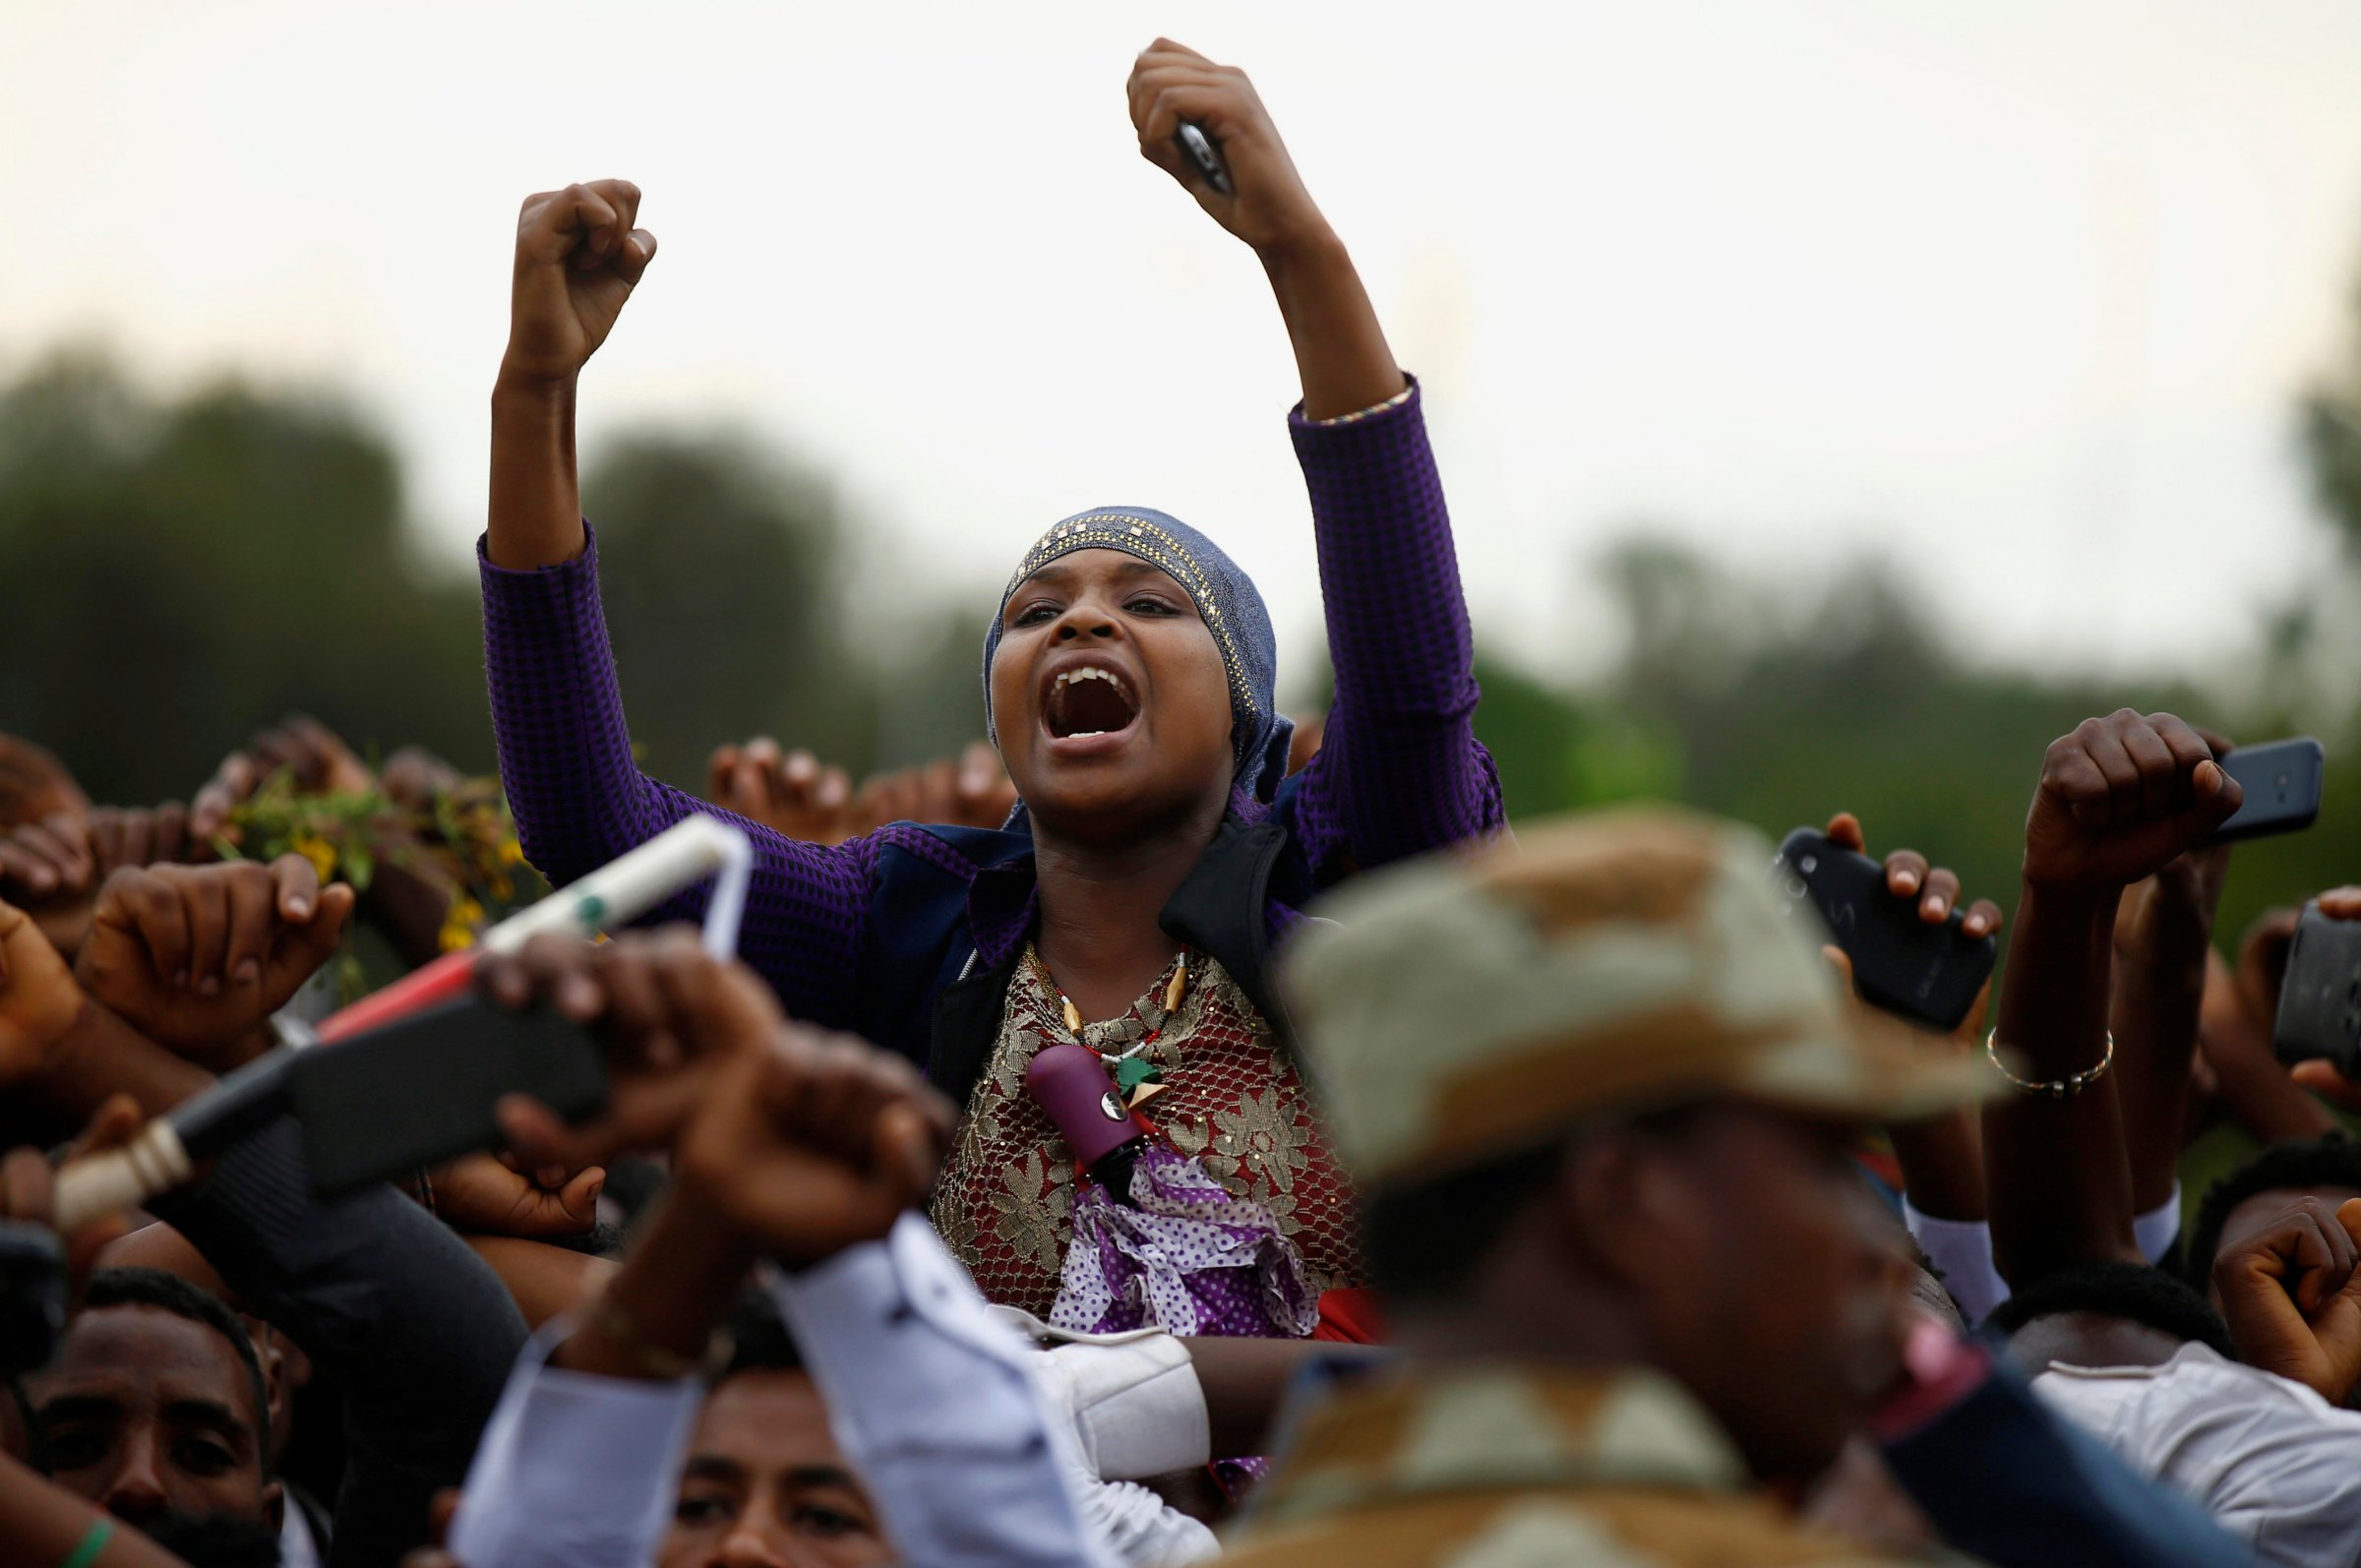 Why Ethiopia is under a state of emergency